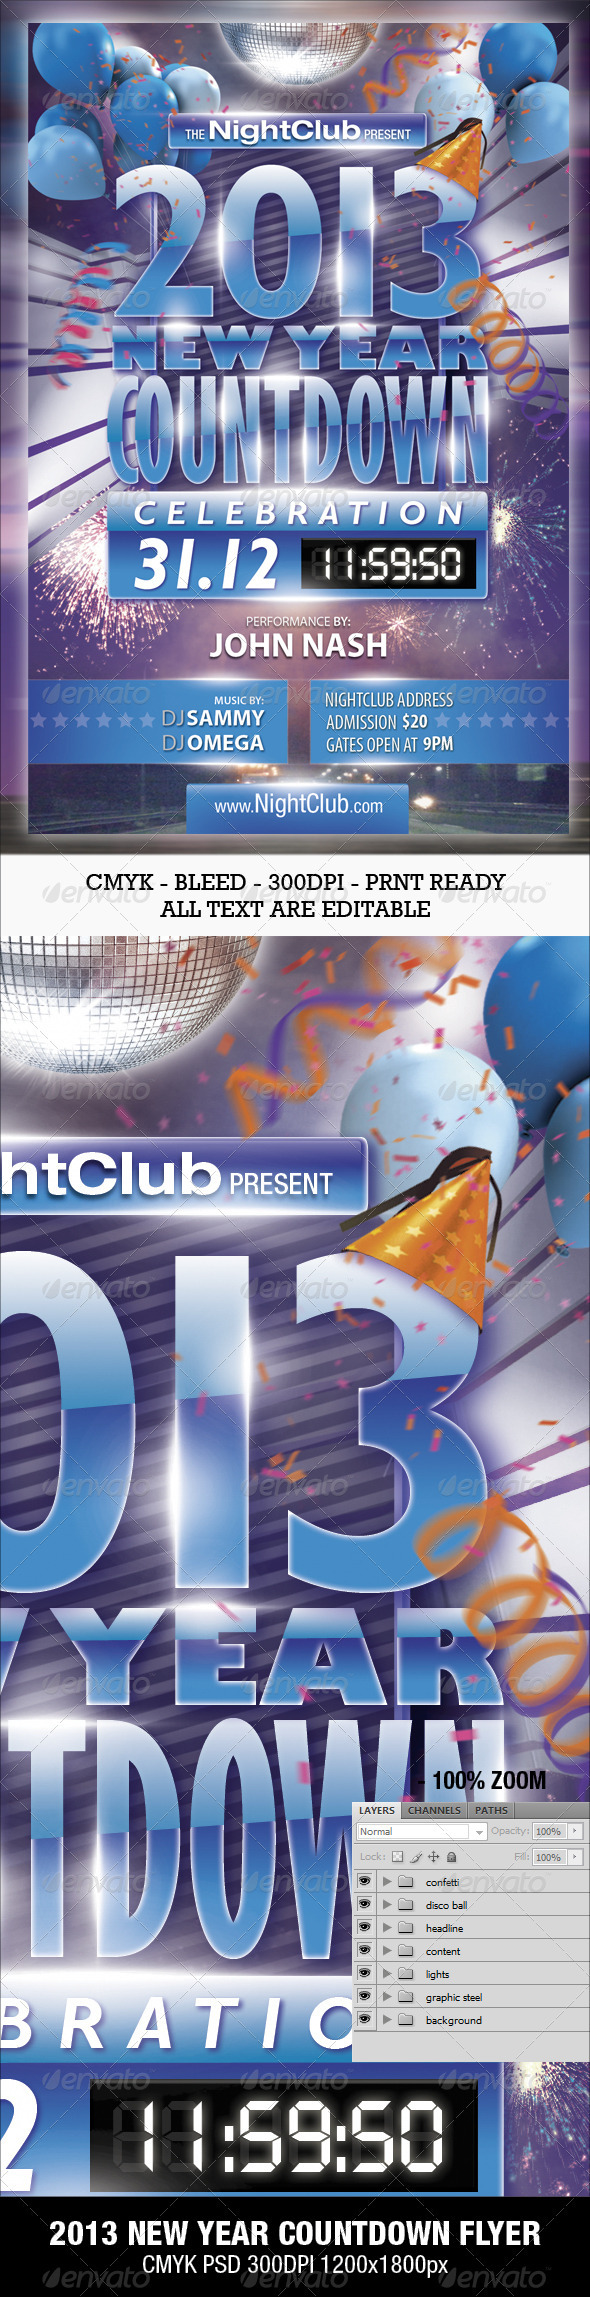 GraphicRiver 2013 New Year Countdown Party Flyer 3466258